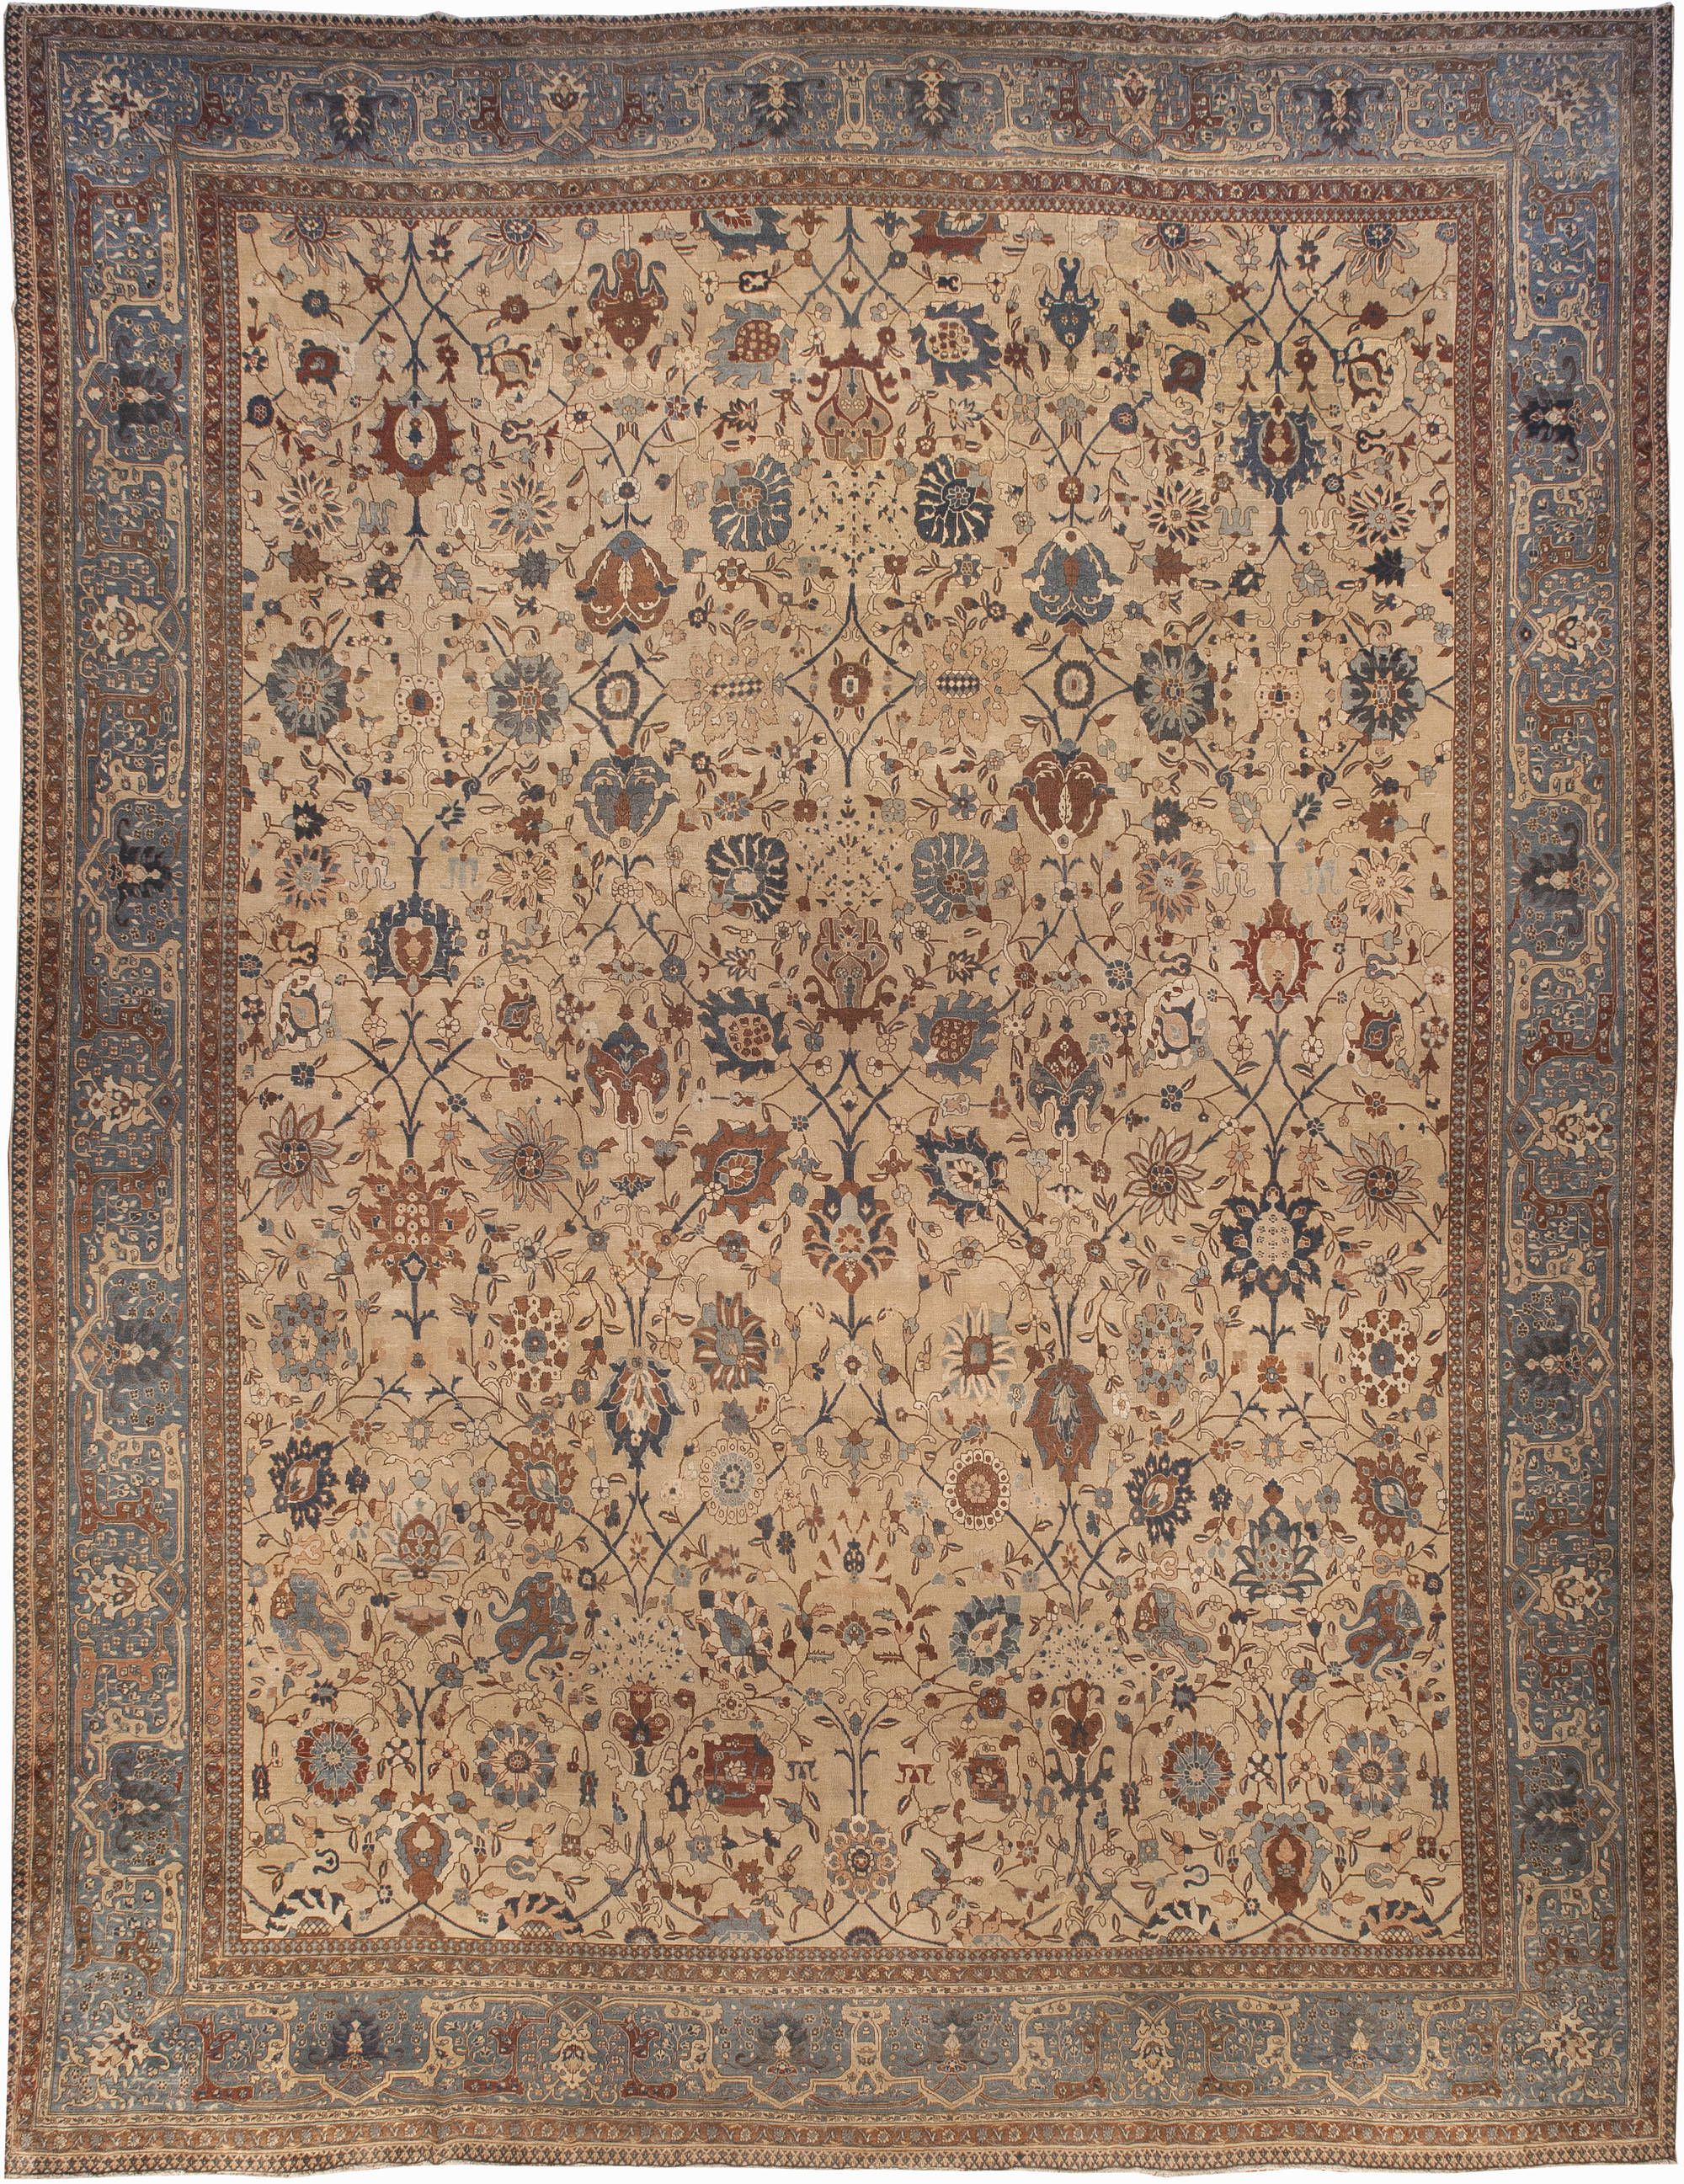 Extra Large Antique Persian Tabriz Rug Bb1400 By Doris Leslie Blau